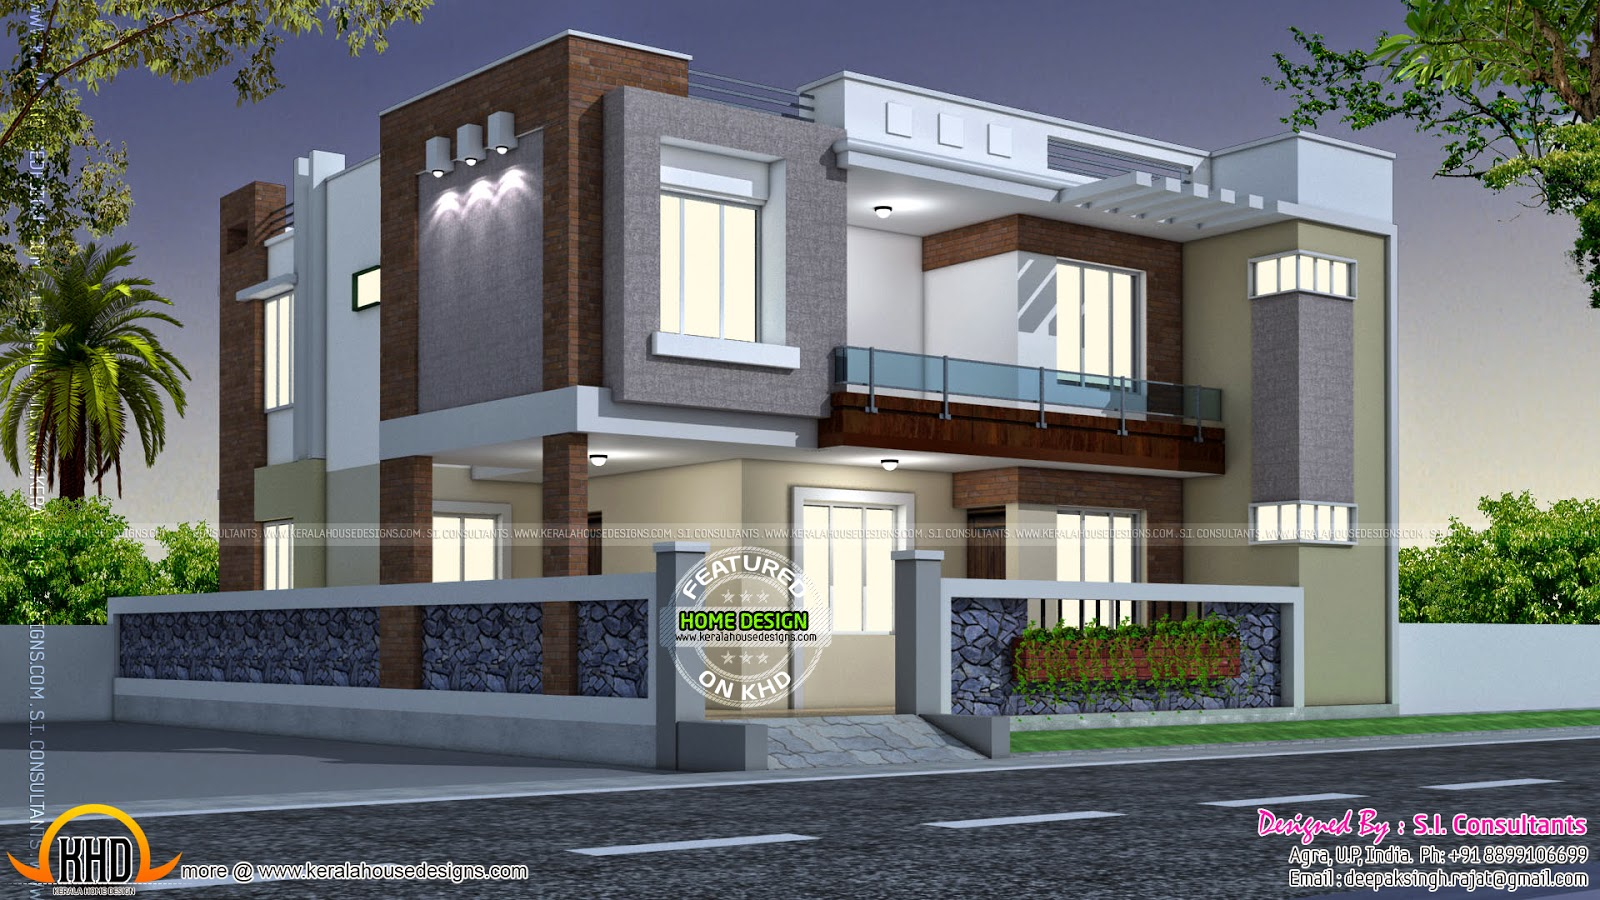 Modern home designs indian ideasidea interior plan houses for Modern home designs plans